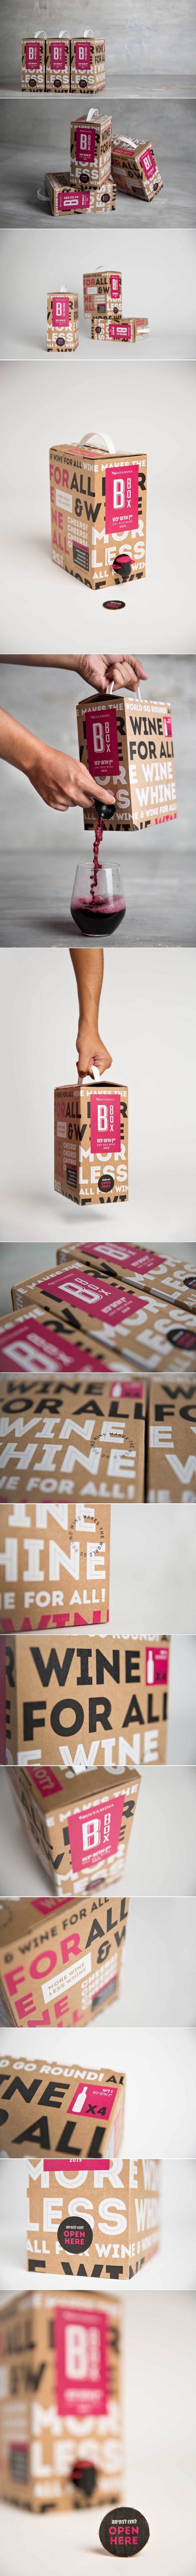 Bbox — The Dieline | Packaging & Branding Design & Innovation News